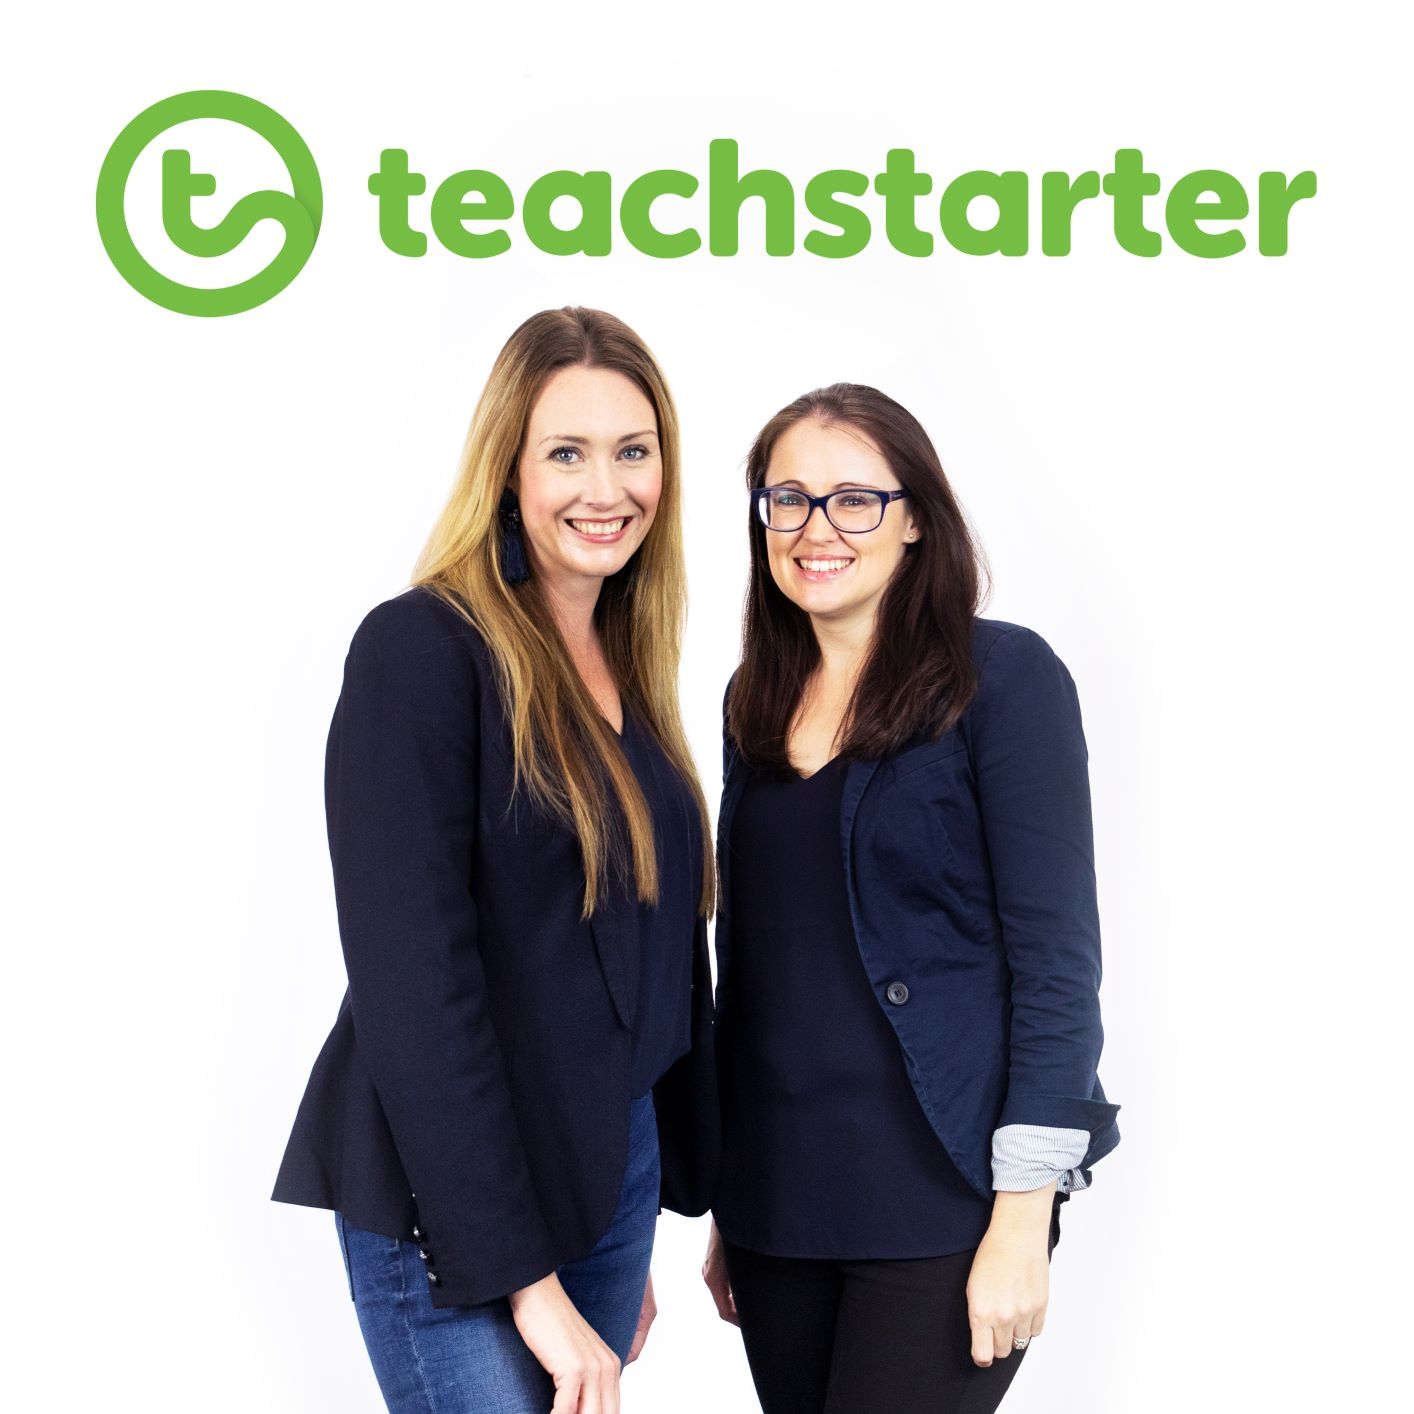 Bronwyn Brady Jill Snape Teach Starter For the Love of Teaching Podcast The Buzz Teachers Education Chat Talk